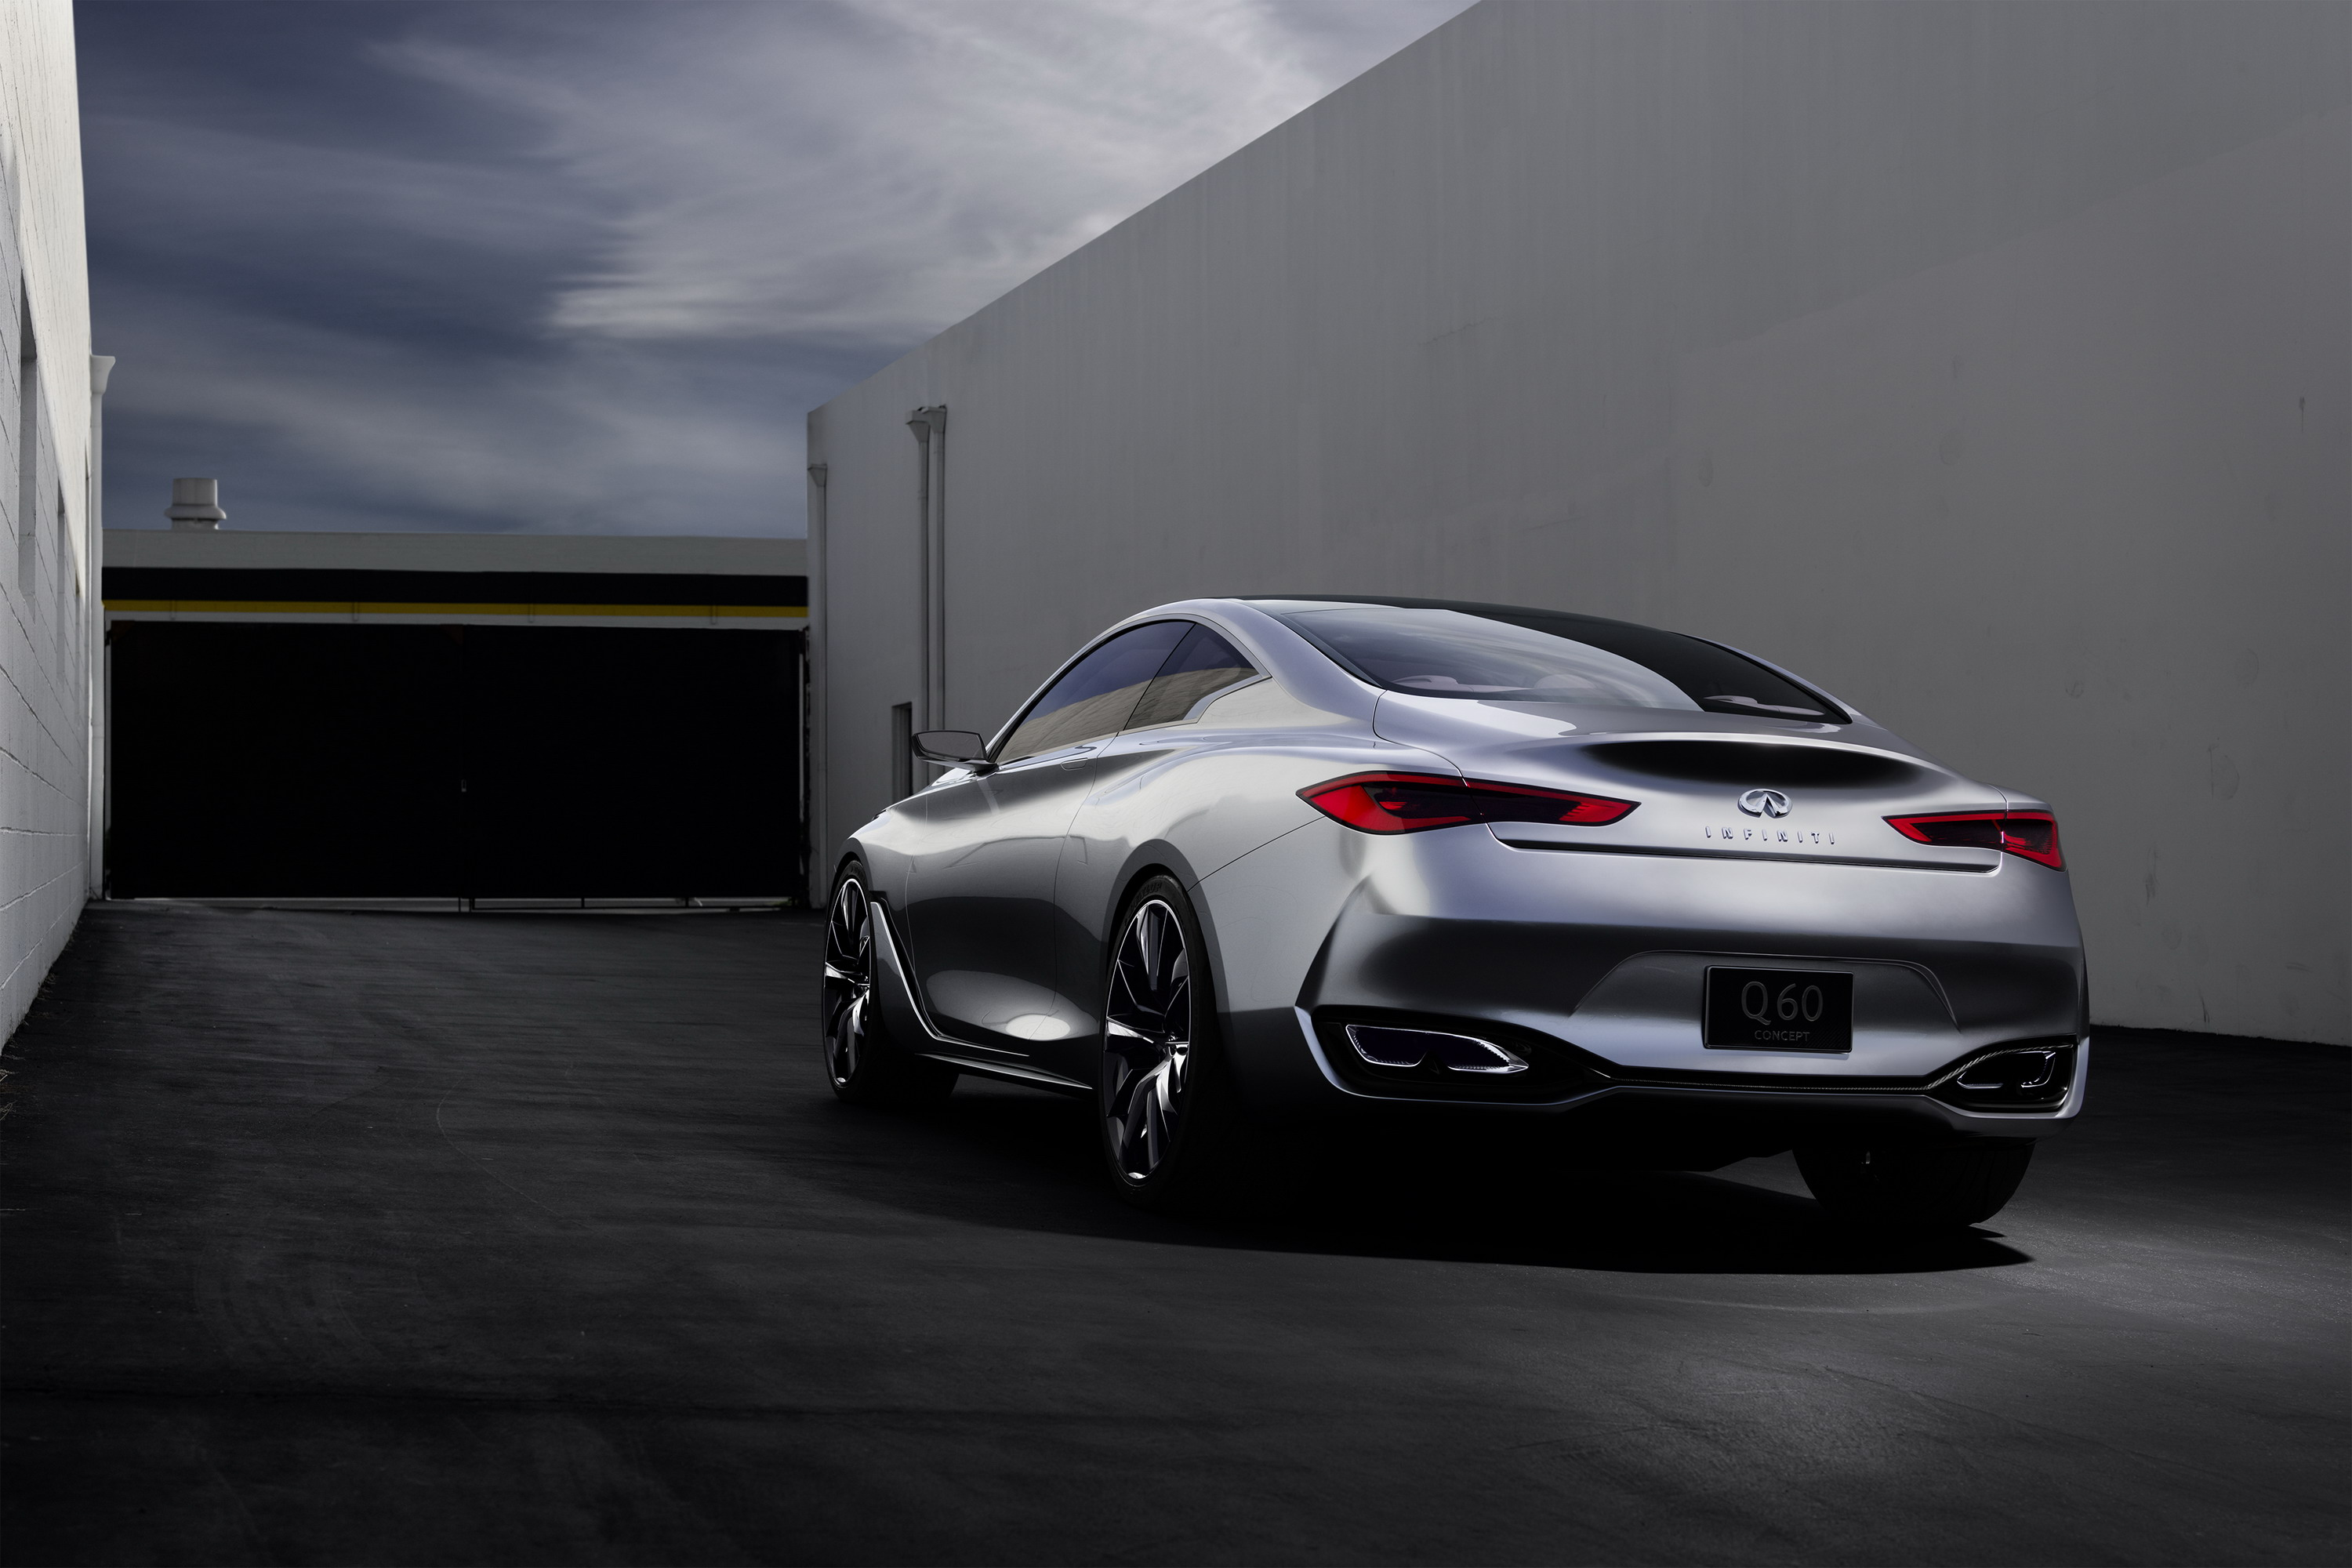 2015 infiniti q60 concept review top speed after much teasing and waiting infiniti has unexpectedly released the first images of the q60 concept ahead of the 2015 north american international auto vanachro Gallery